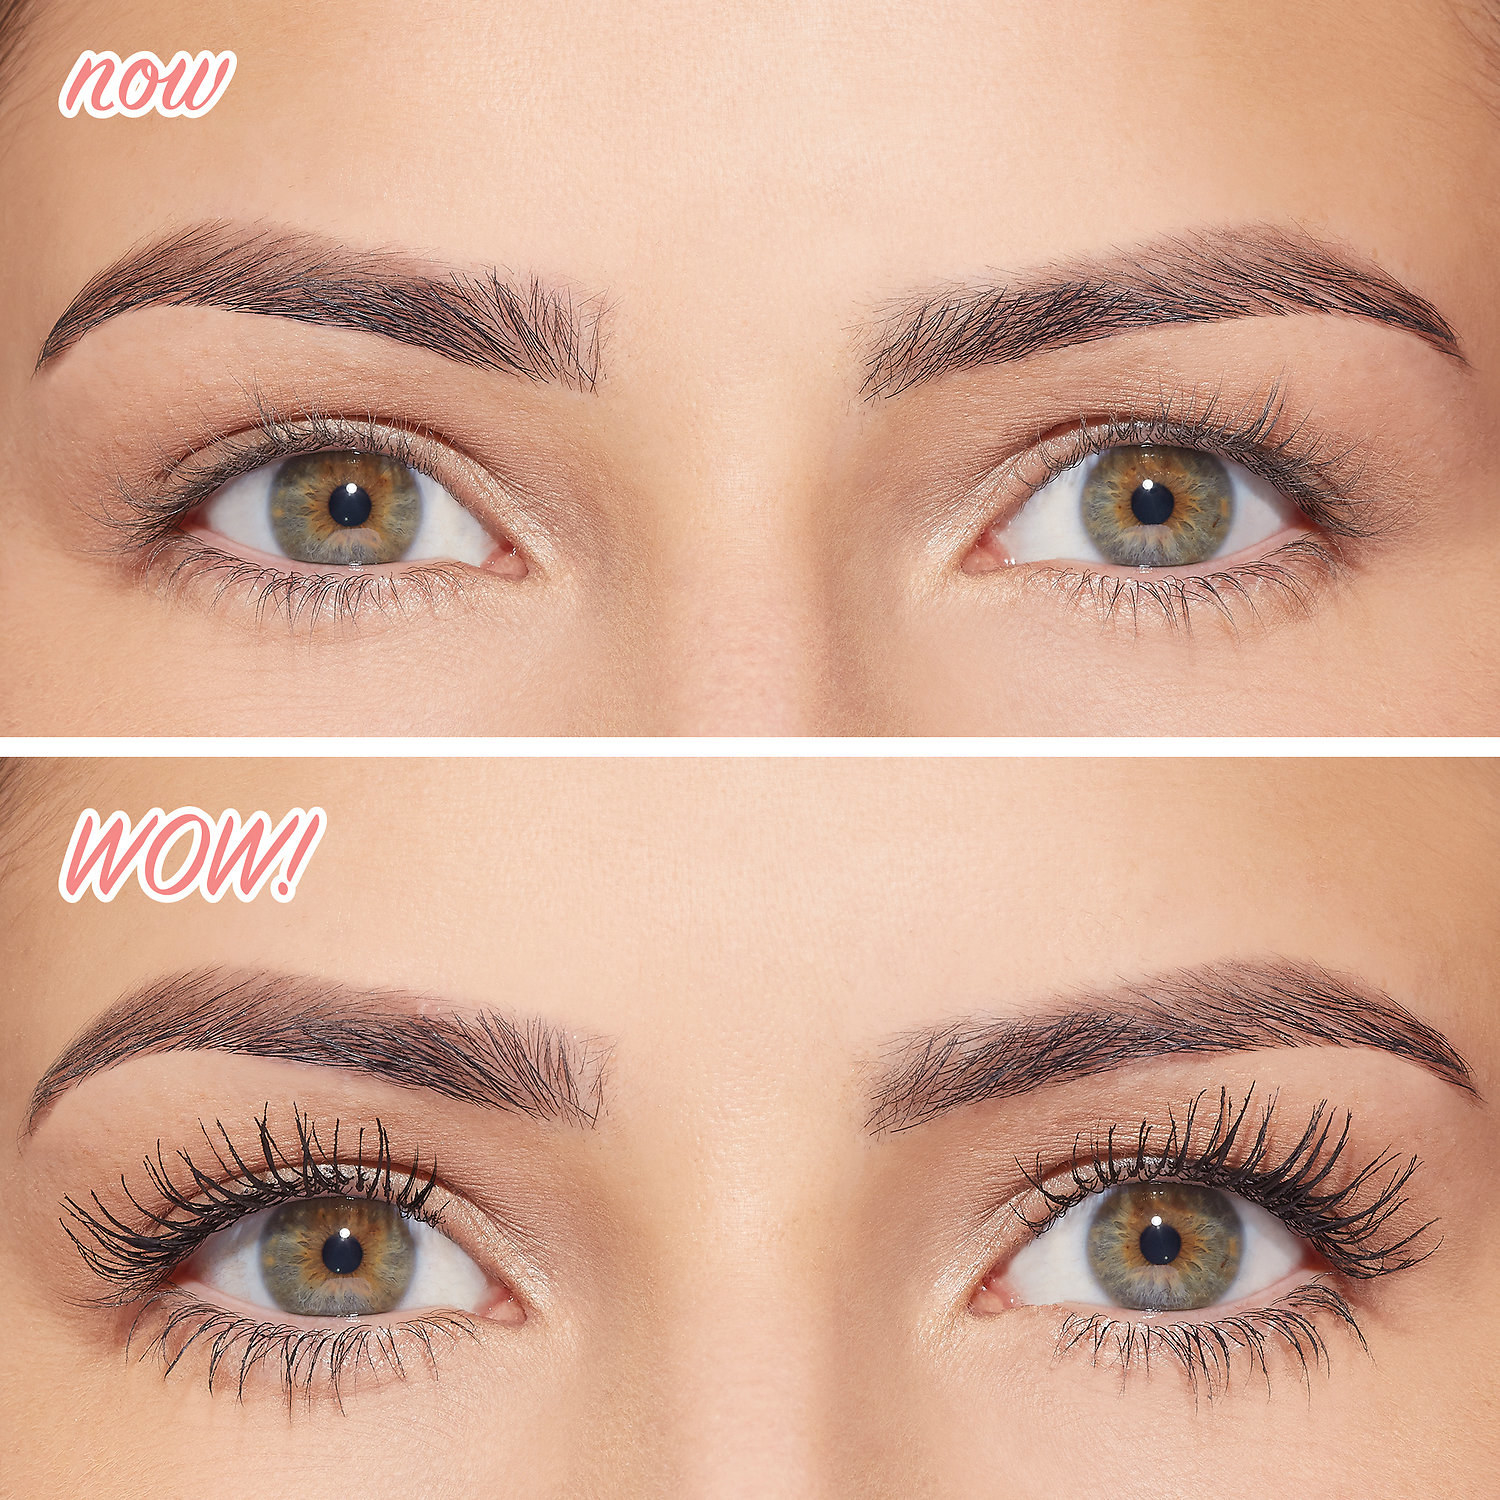 model showing a before of plain thin lashes, and an after of thick, long lashes after wearing the product